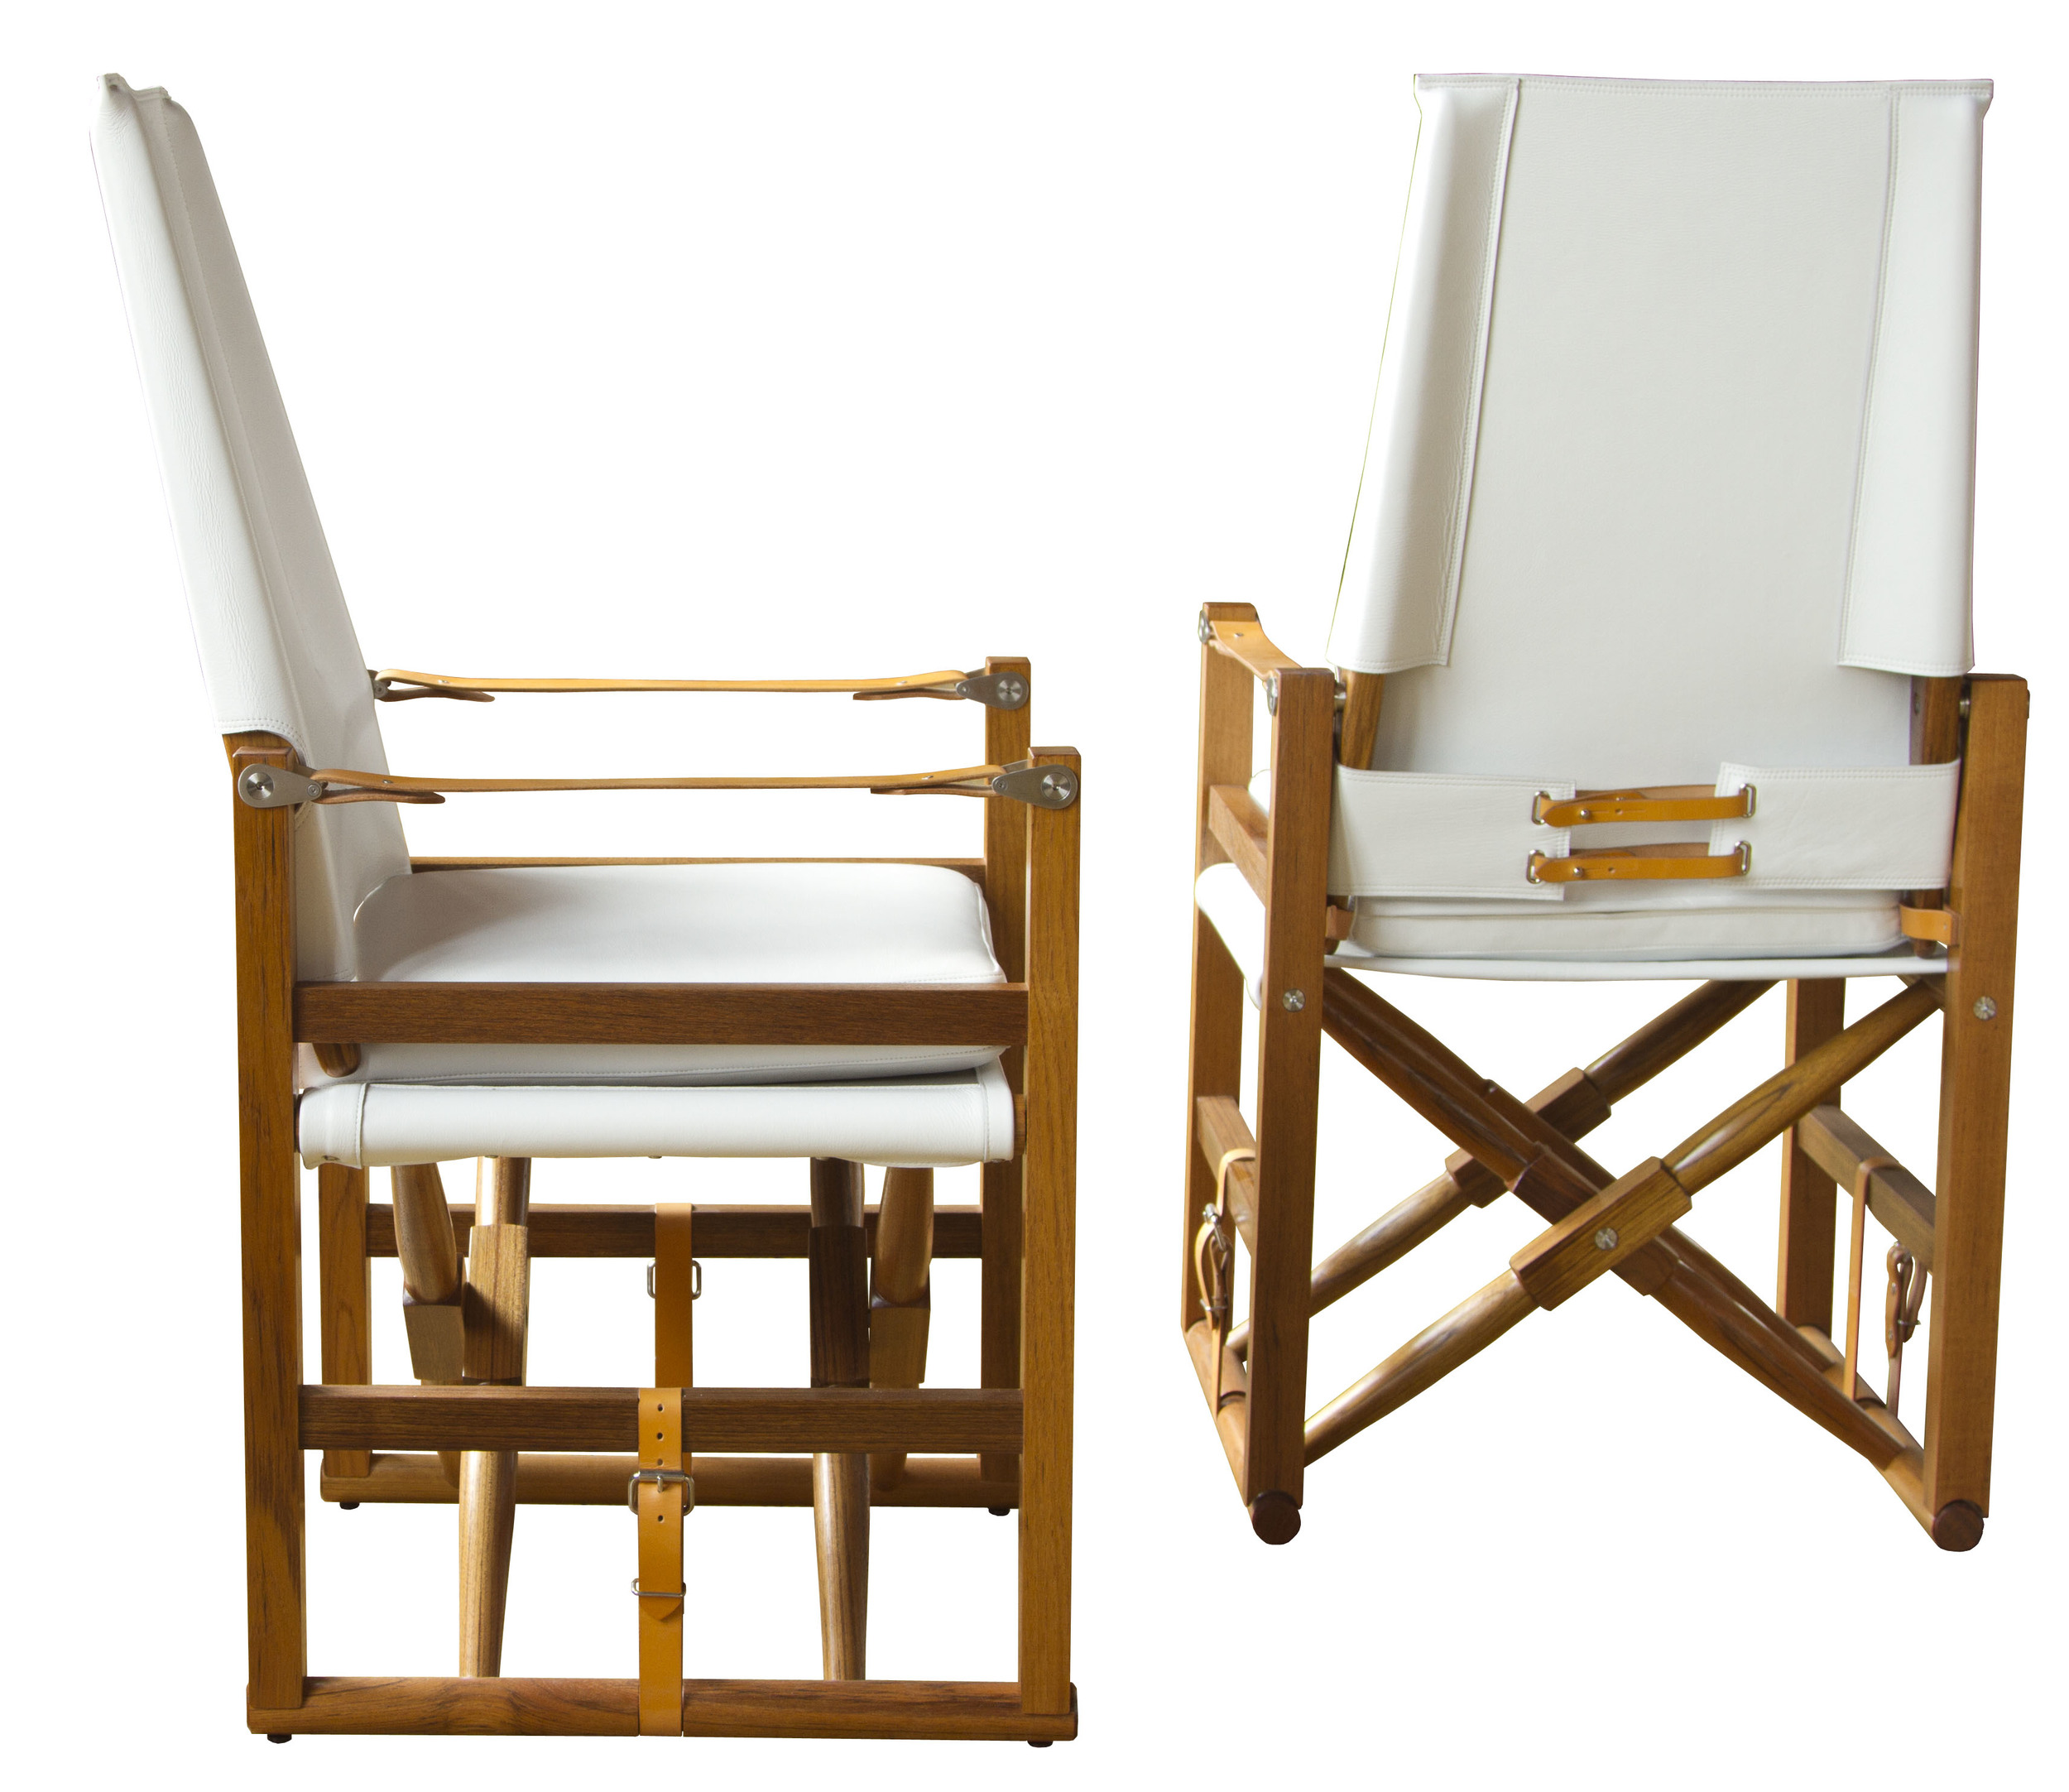 high folding chair best desk chairs for back cabourn wide richard wrightman design